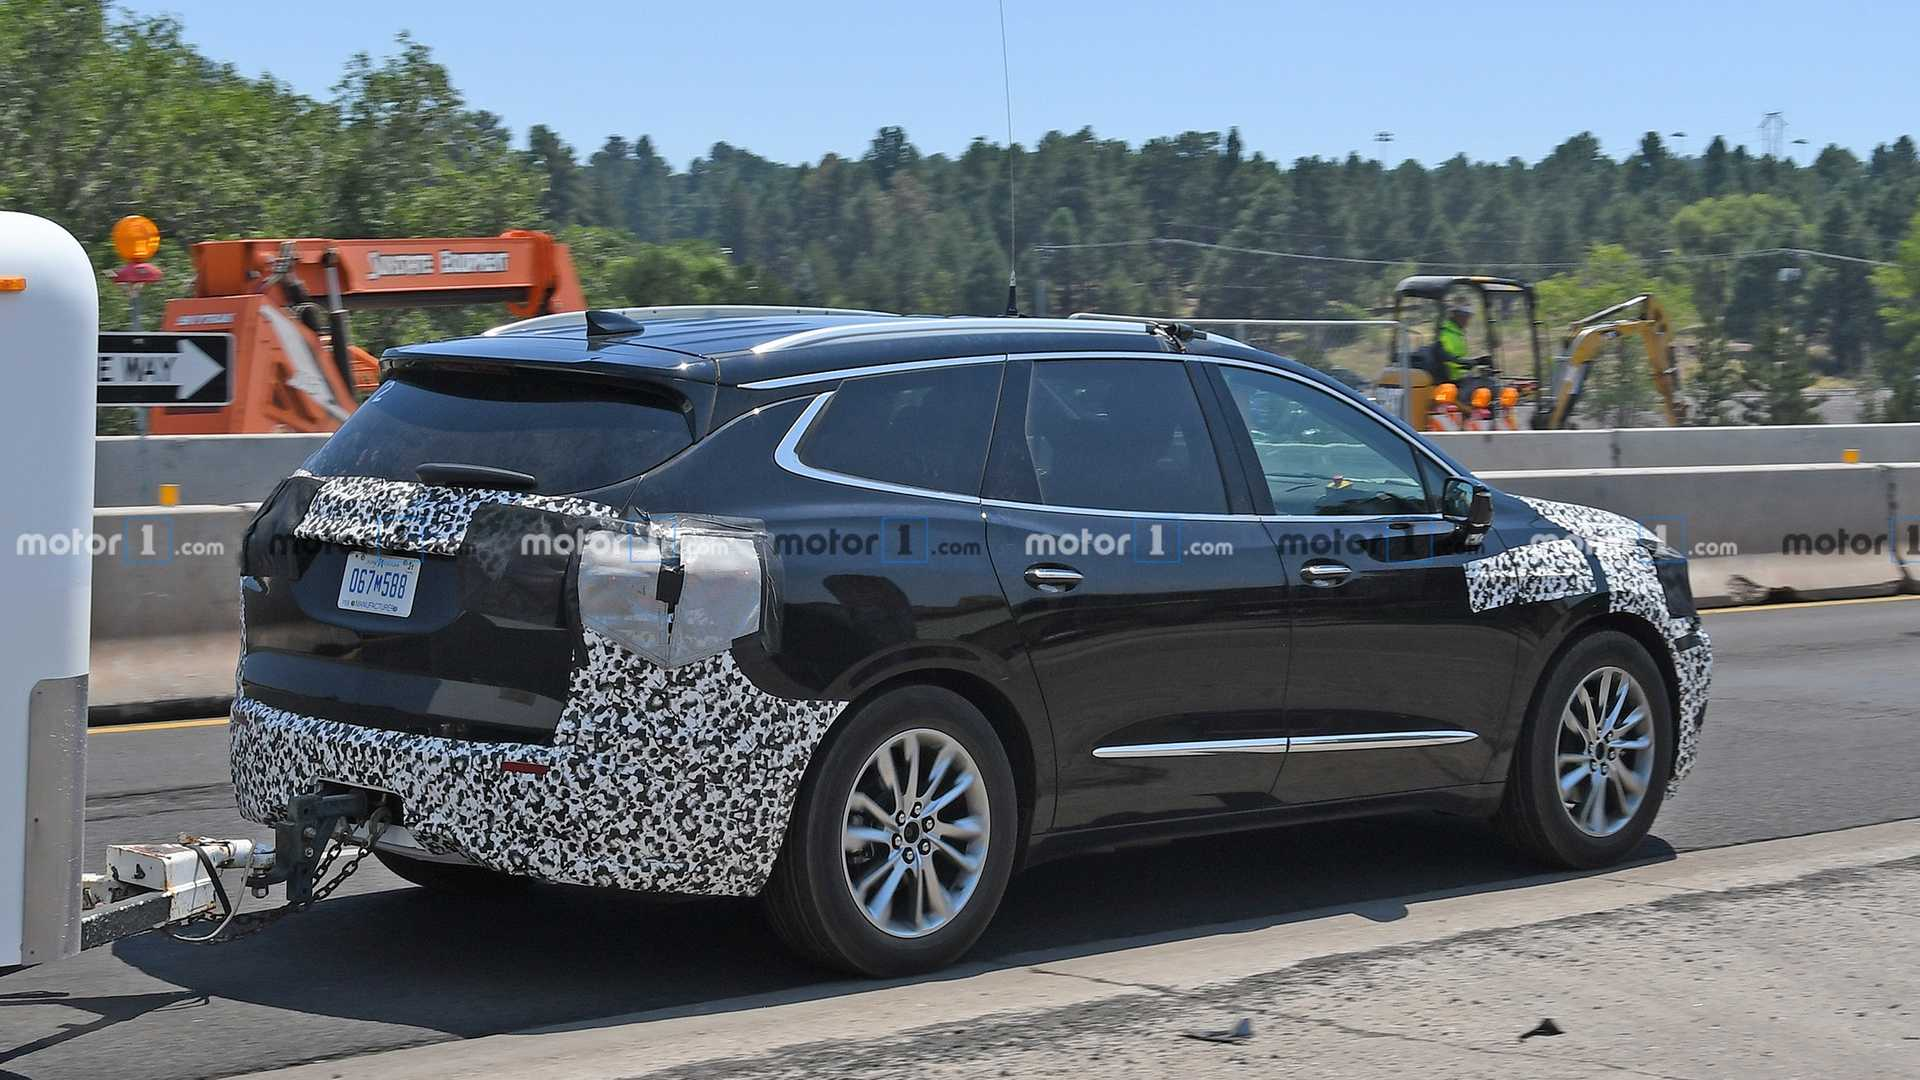 2021 Buick Enclave Spy Photos Redesign and Concept